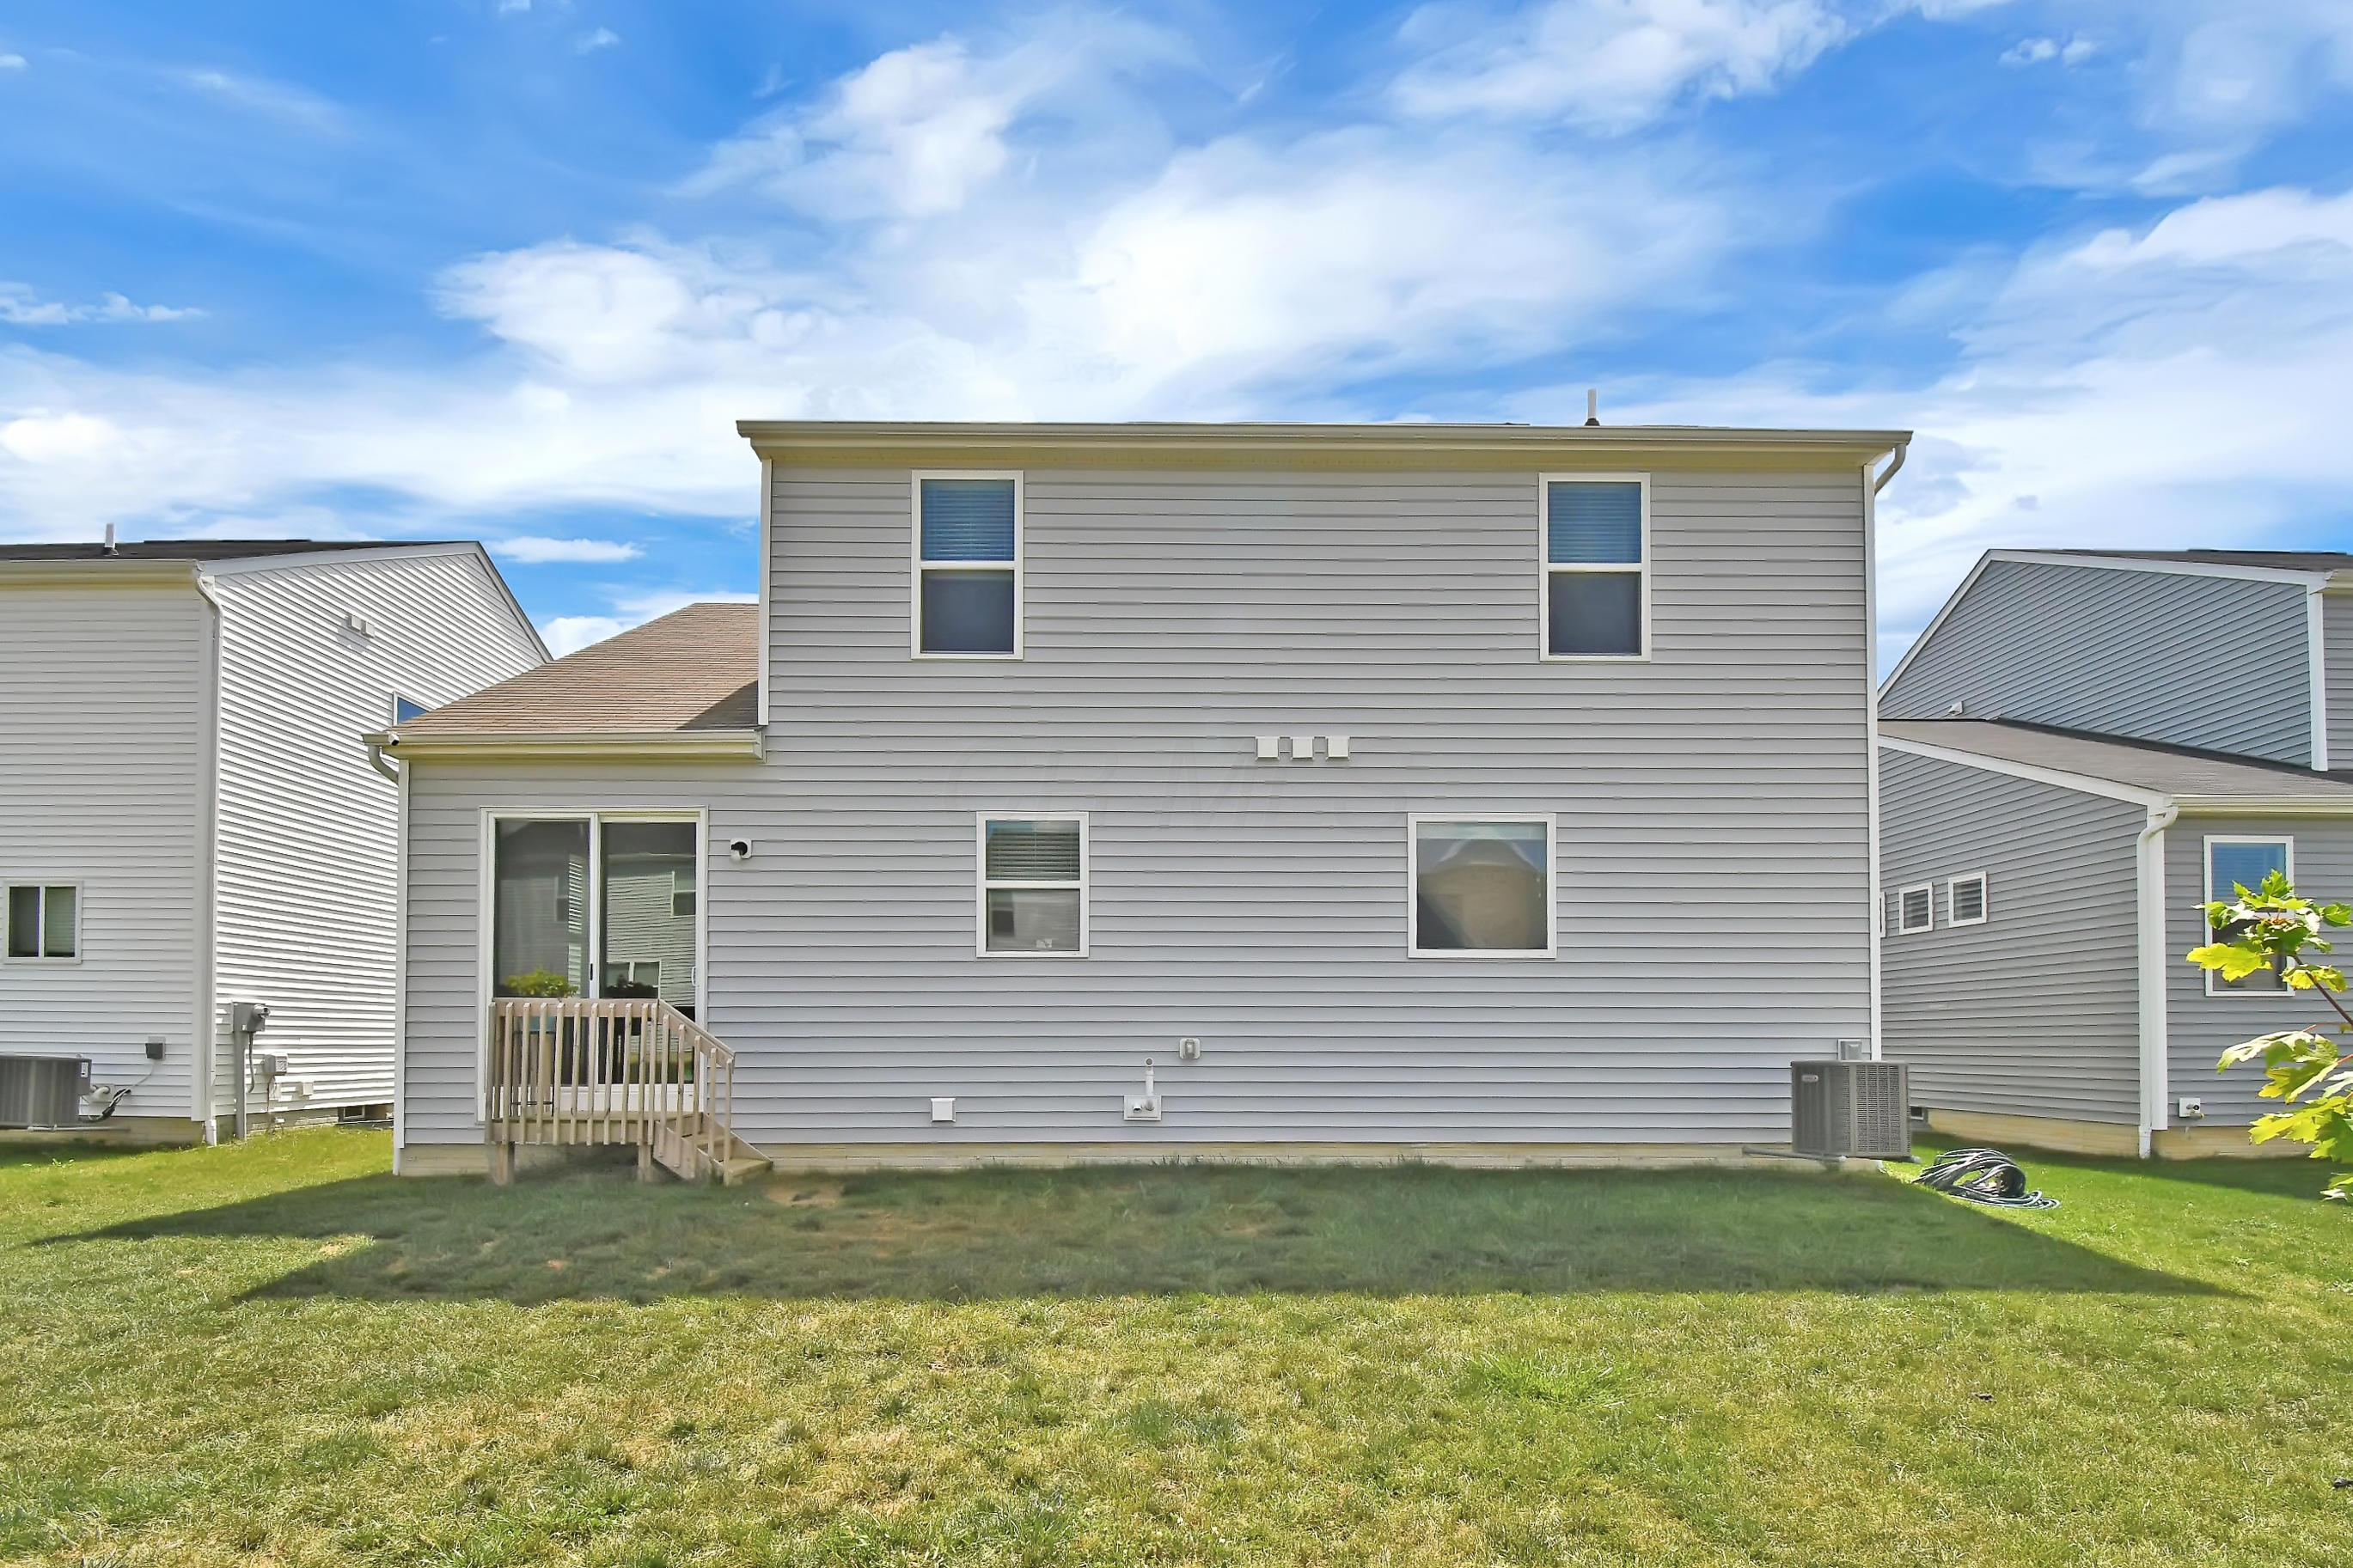 5968 Annsborough Drive, Galloway, Ohio 43119, 3 Bedrooms Bedrooms, ,3 BathroomsBathrooms,Residential,For Sale,Annsborough,220032058